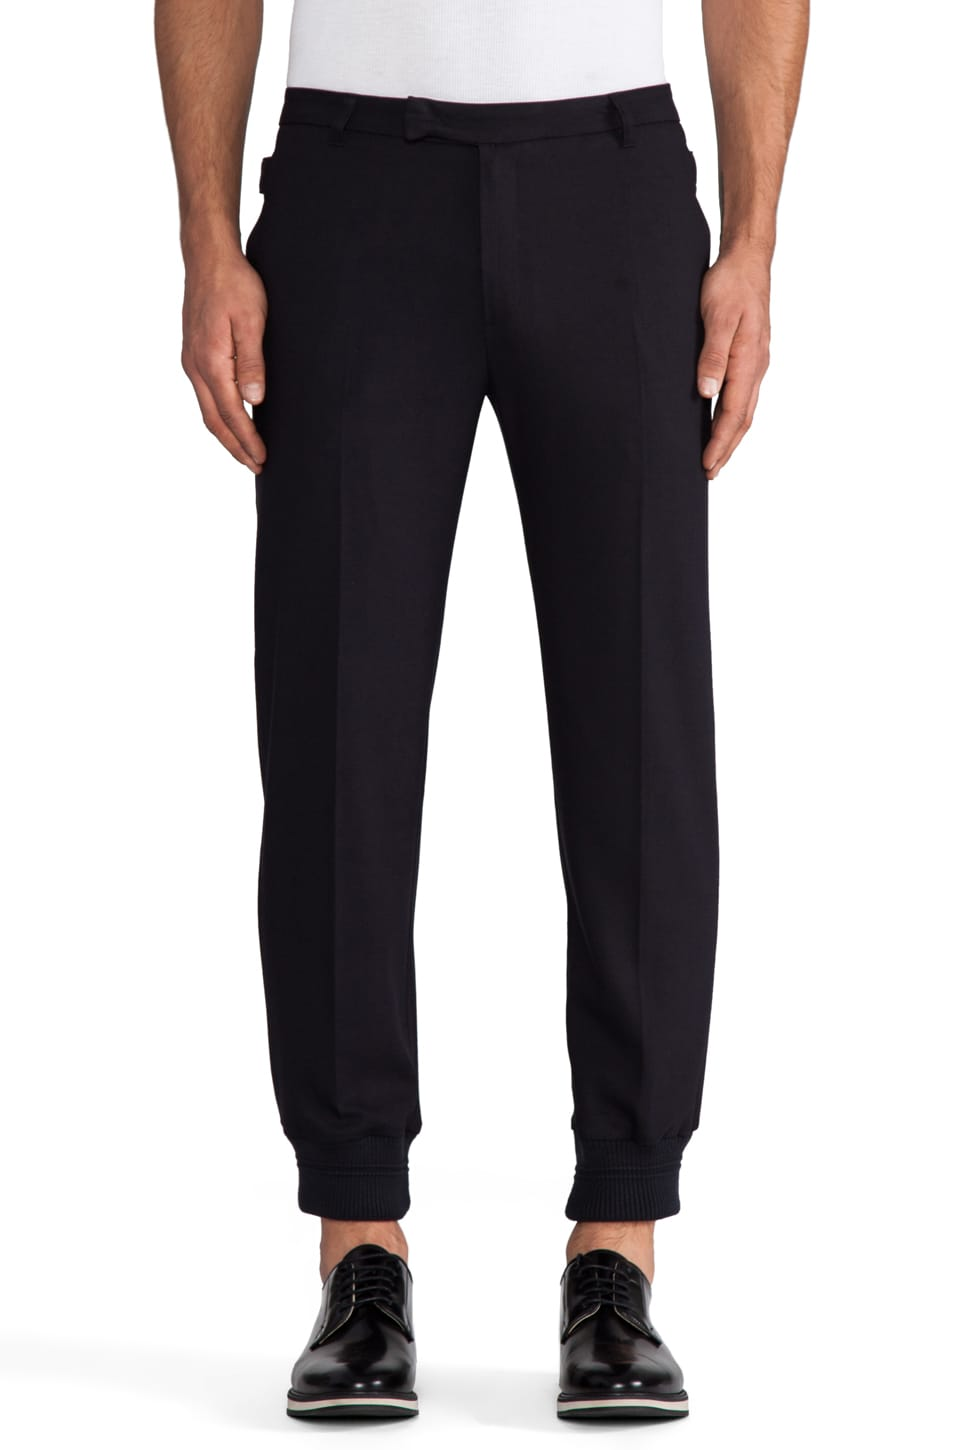 Kai-aakmann Trouser w/ Elastic Cuffs in Navy